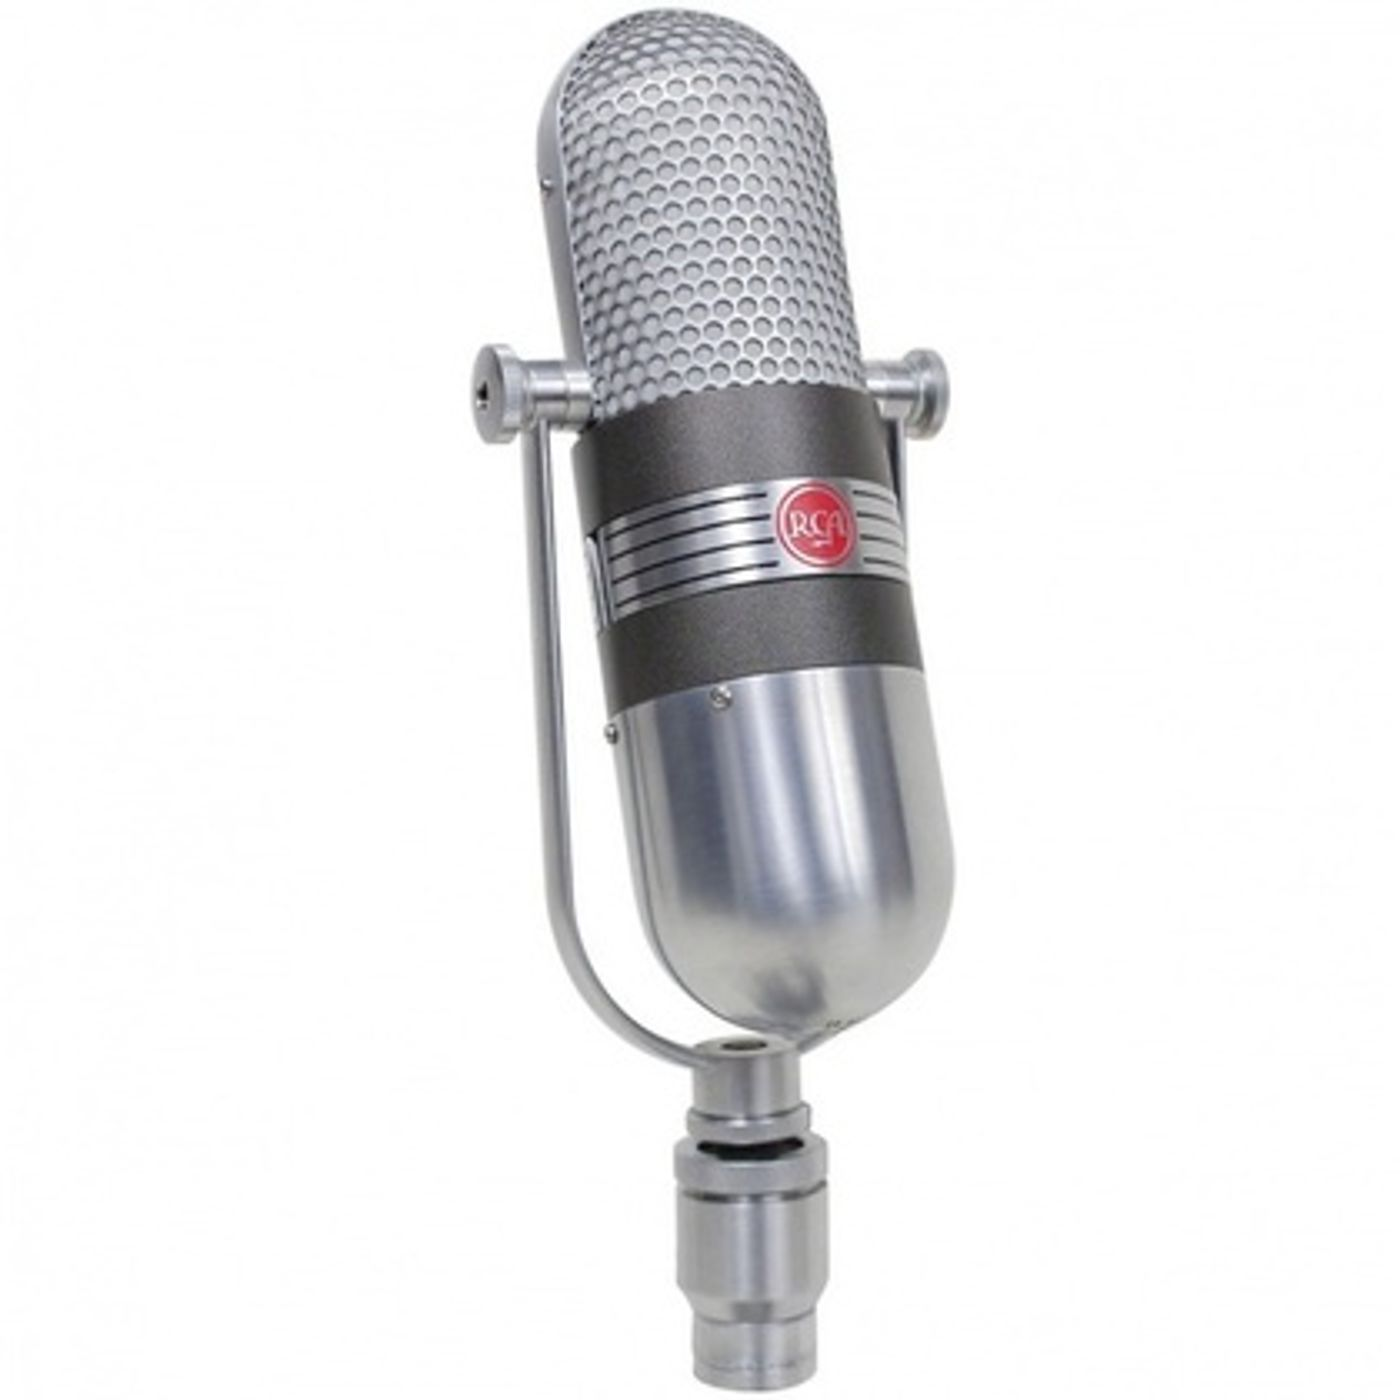 Soon I'll be recording with the legendary RCA 77DX microphone! | 201